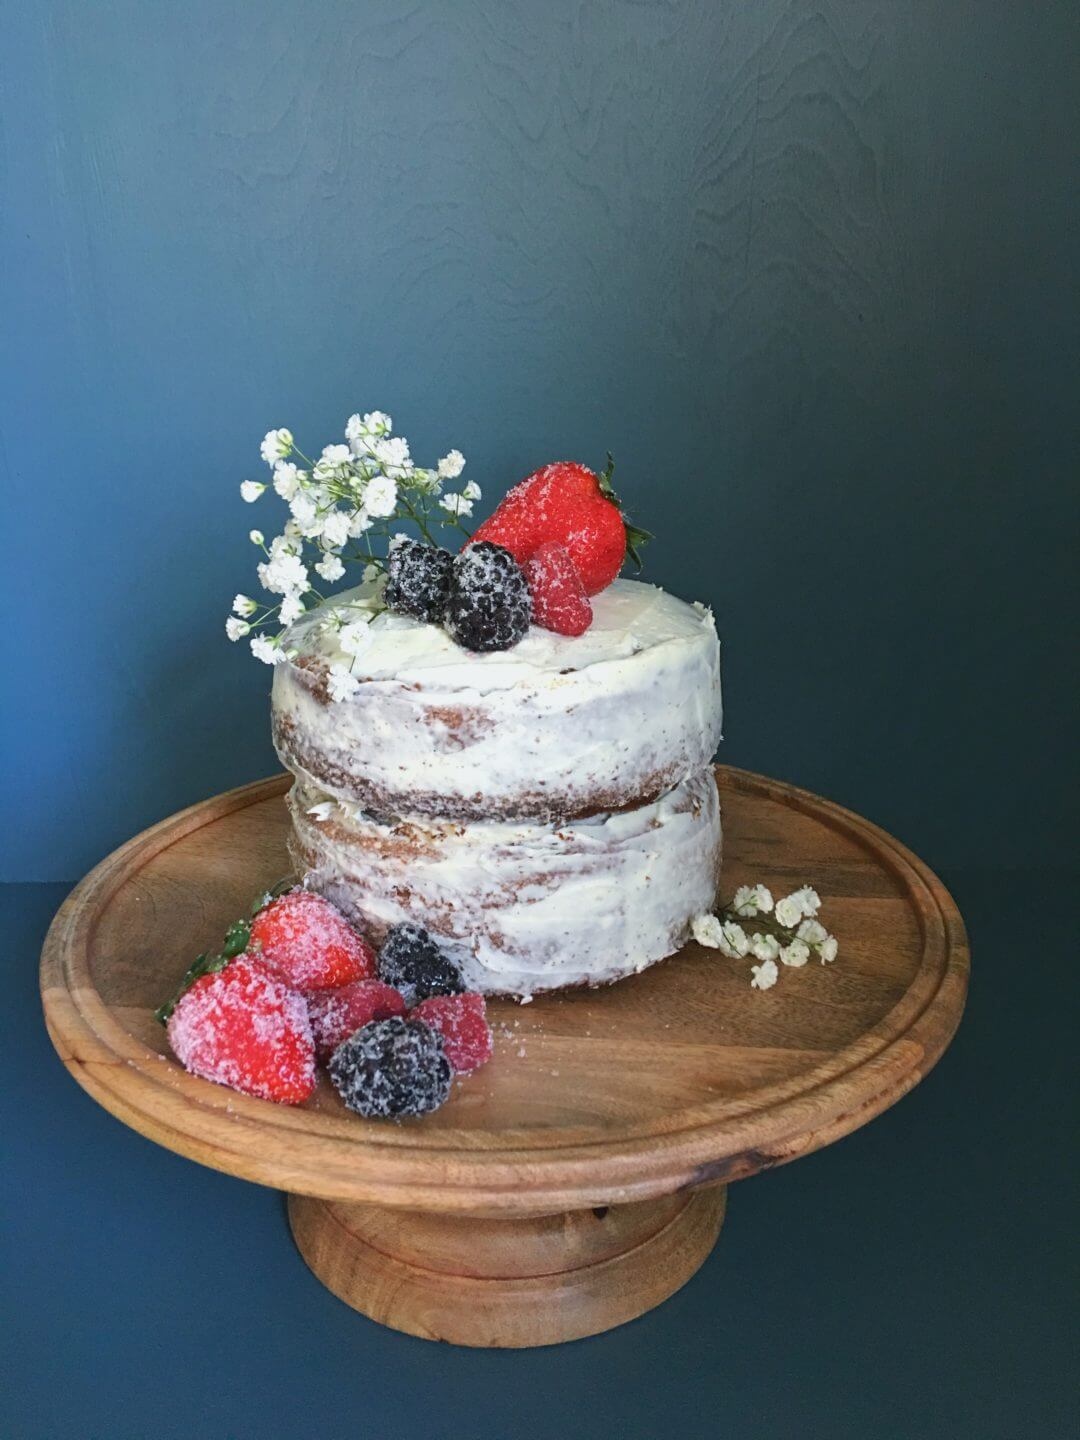 White Christmas Spice Cake with Sugared Berries